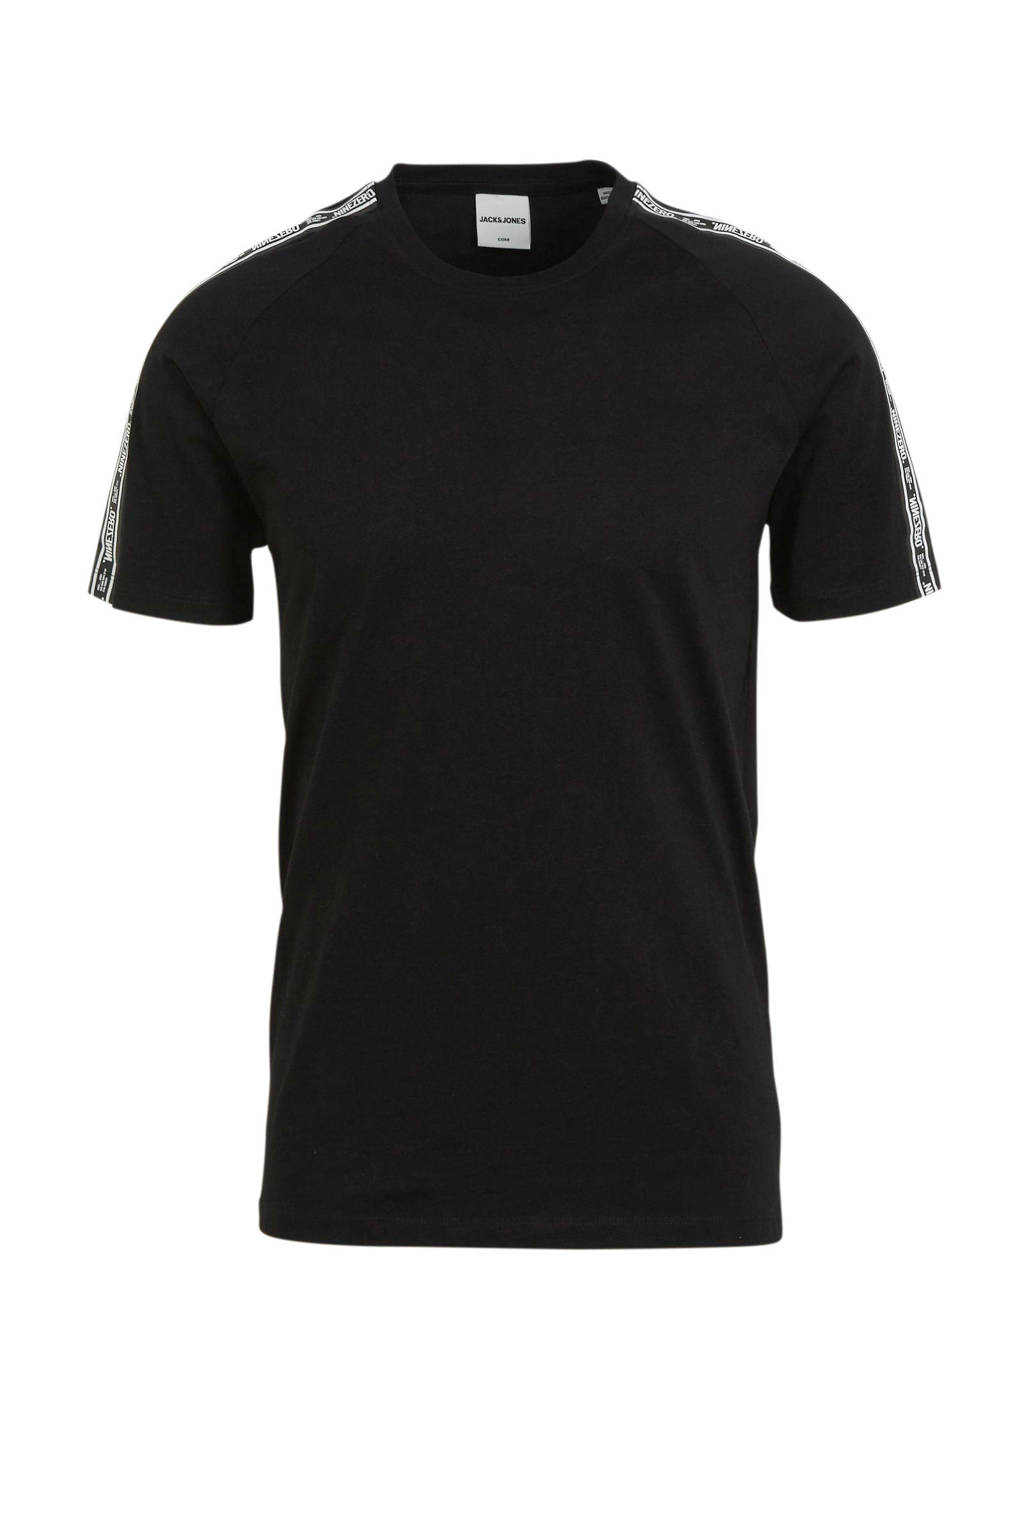 JACK & JONES CORE T-shirt Hugo zwart, Zwart